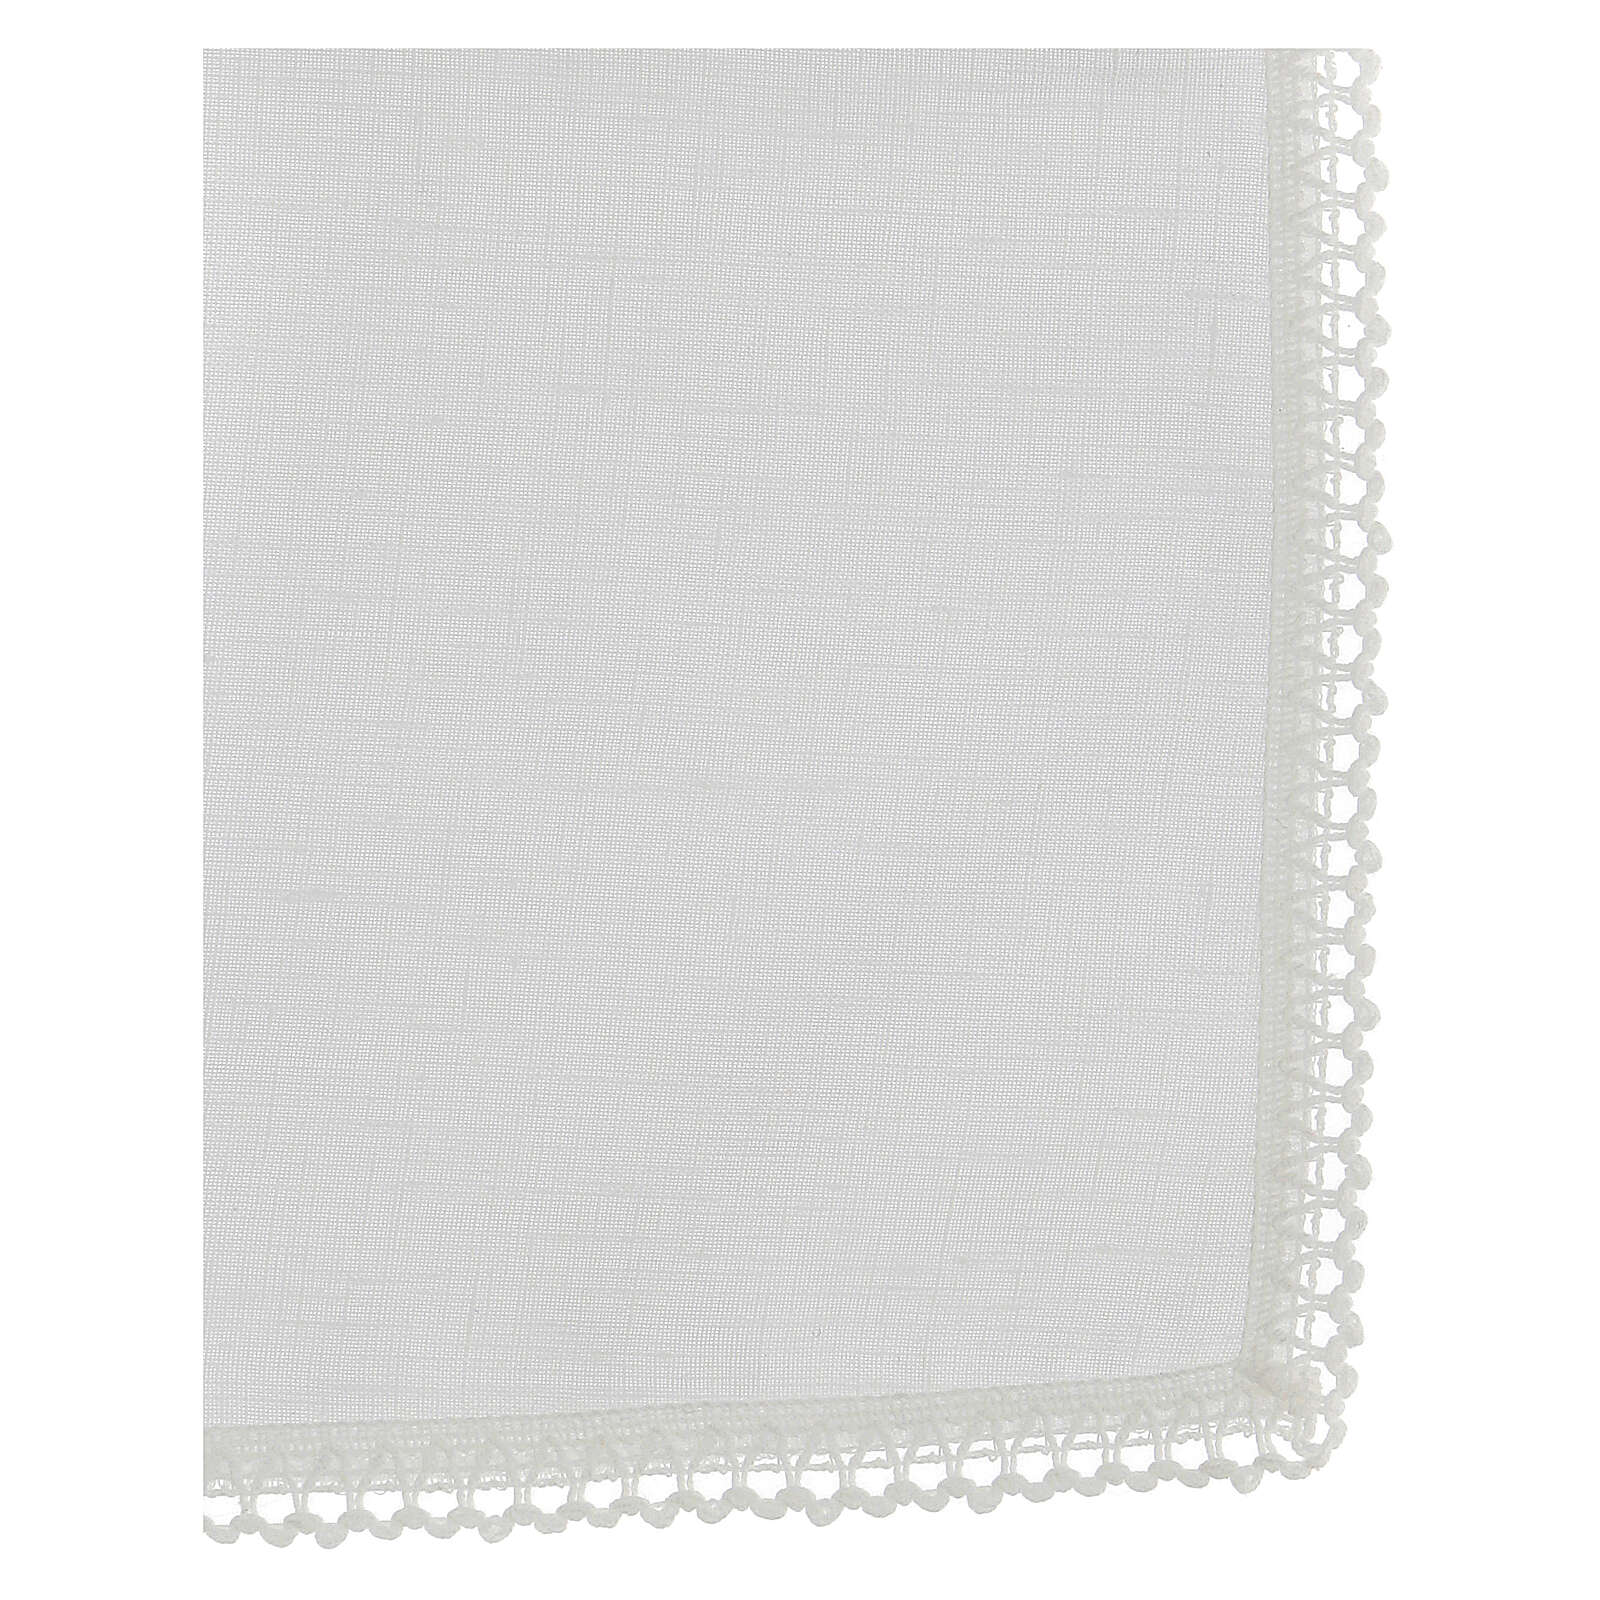 Corporal white 100% linen with white embroidery 4